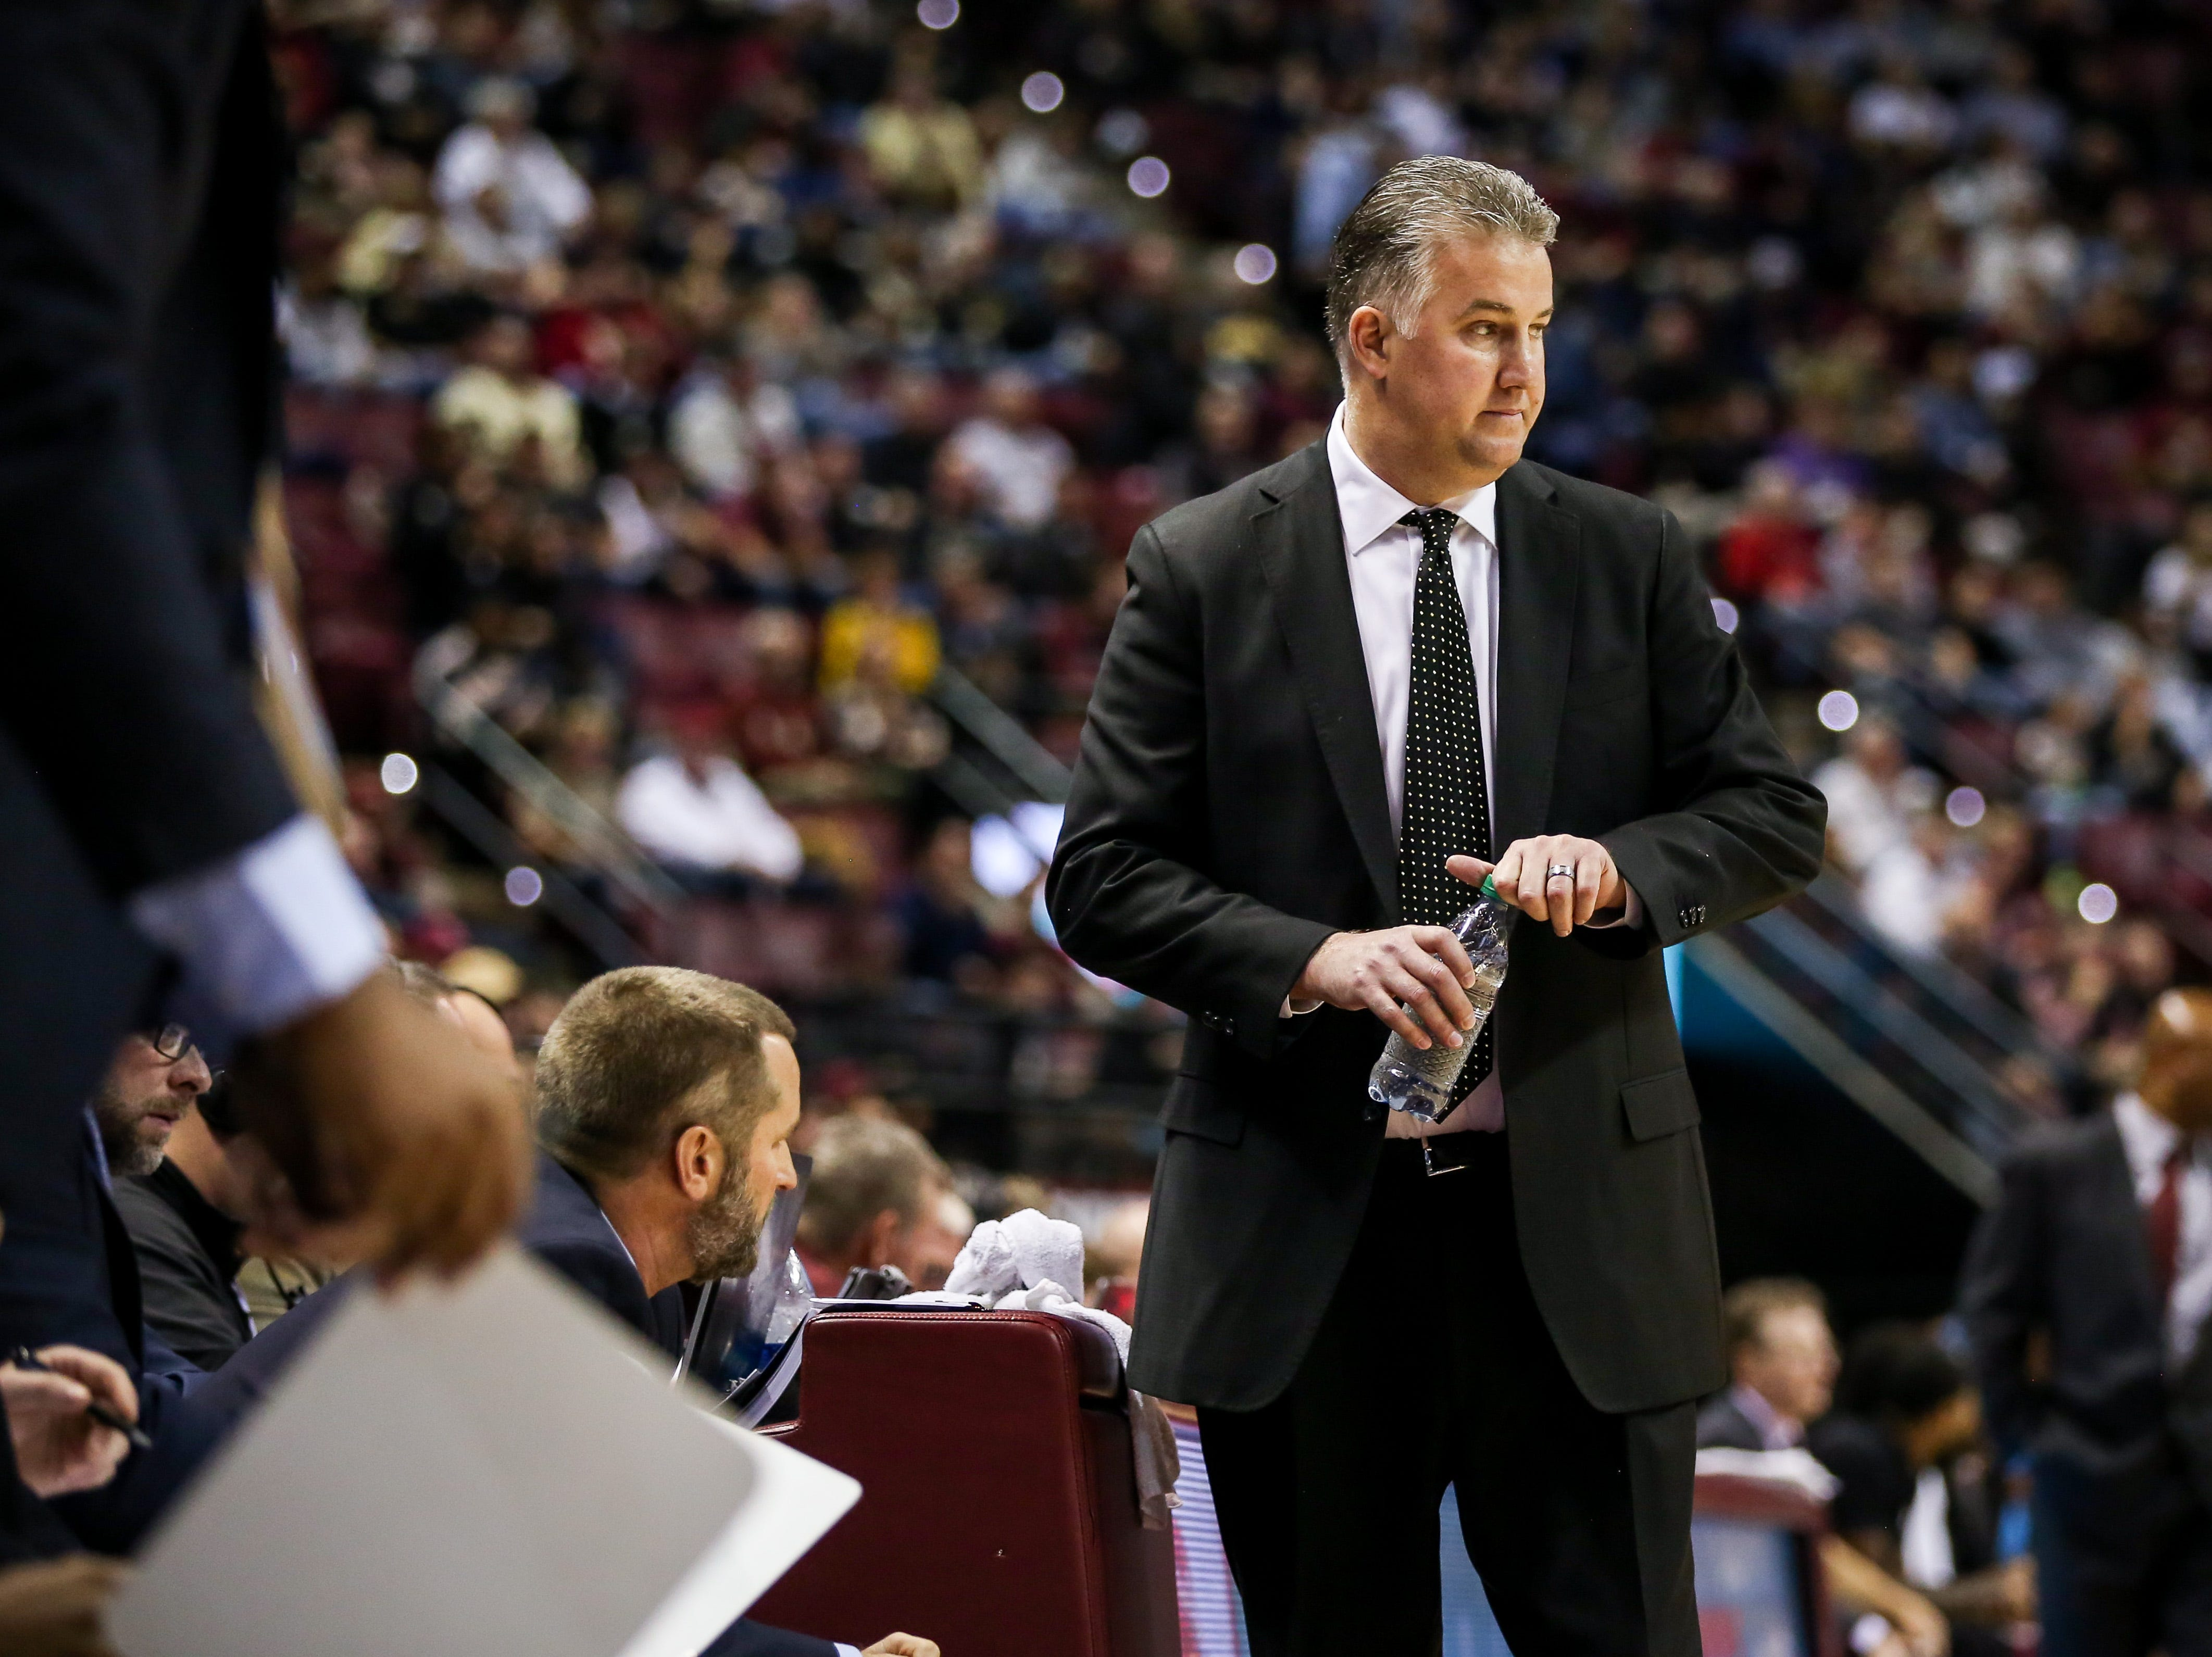 Purdue Basketball Head Coach, Matt Painter, led his team to a solid 5-1 run up until Wednesday, November 28th against Florida State.